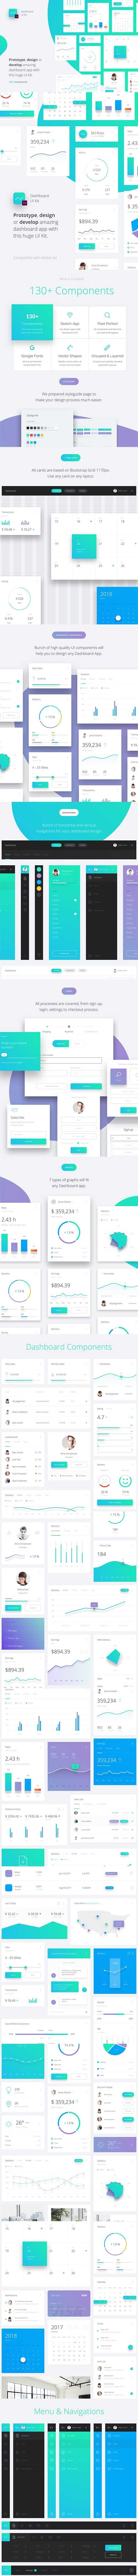 Datta - Dashboard UI Kit for Xd